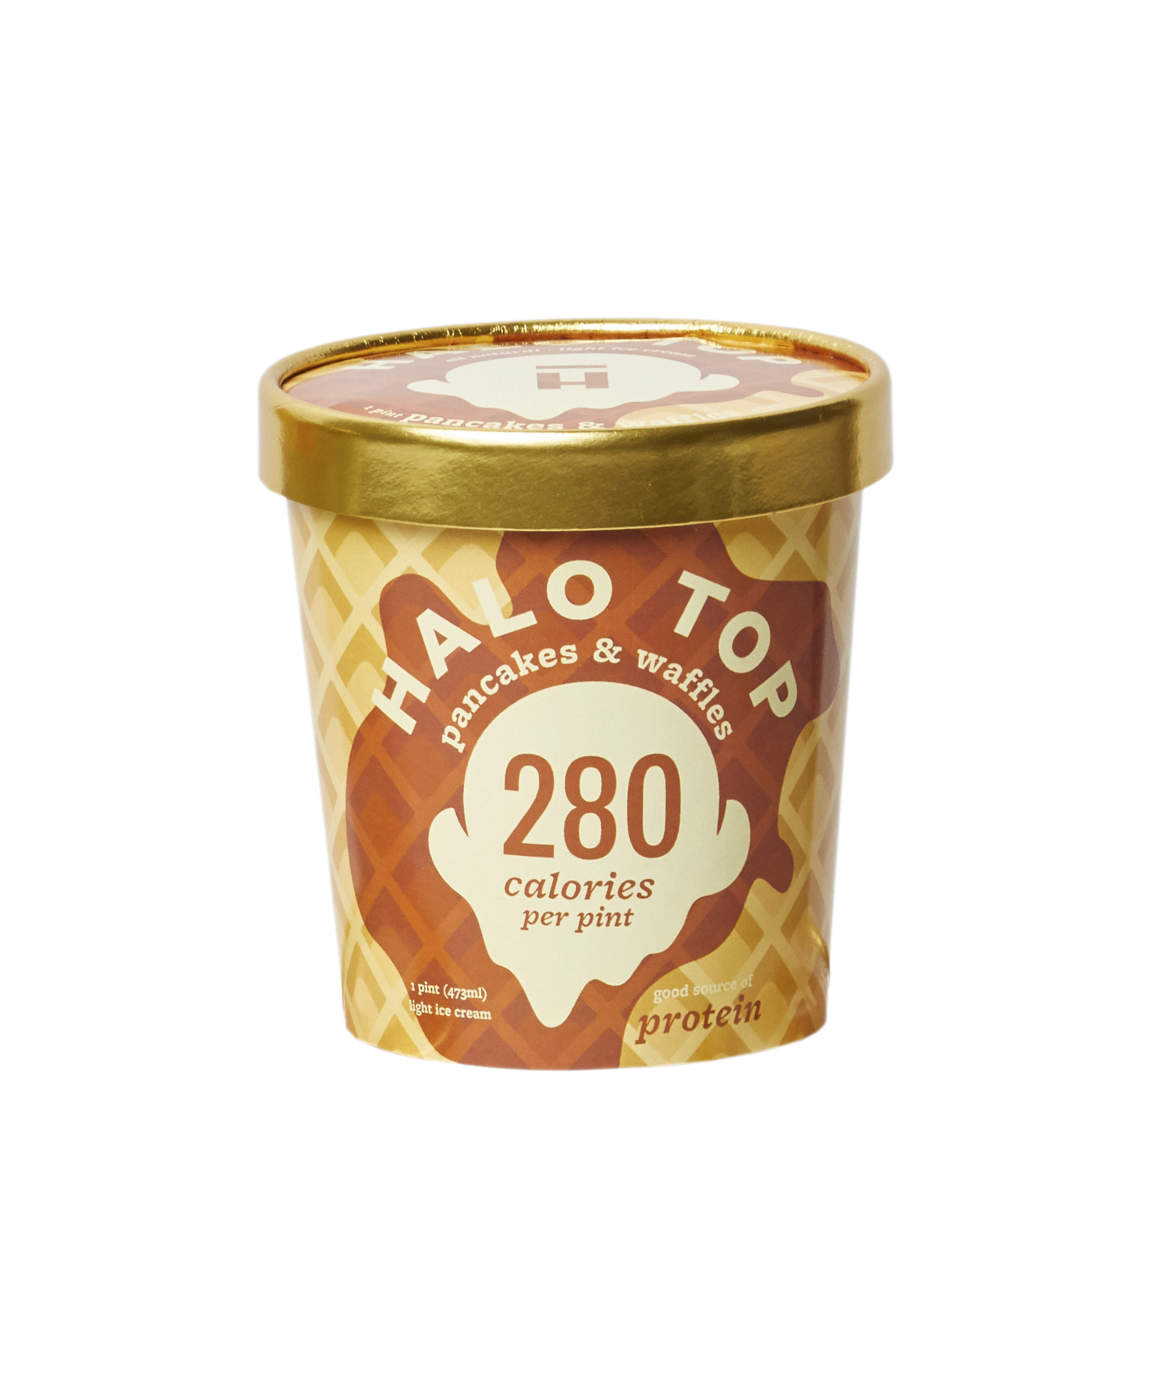 Low-calorie Halo Top ice cream just announced 7 new flavors, and we're drooling